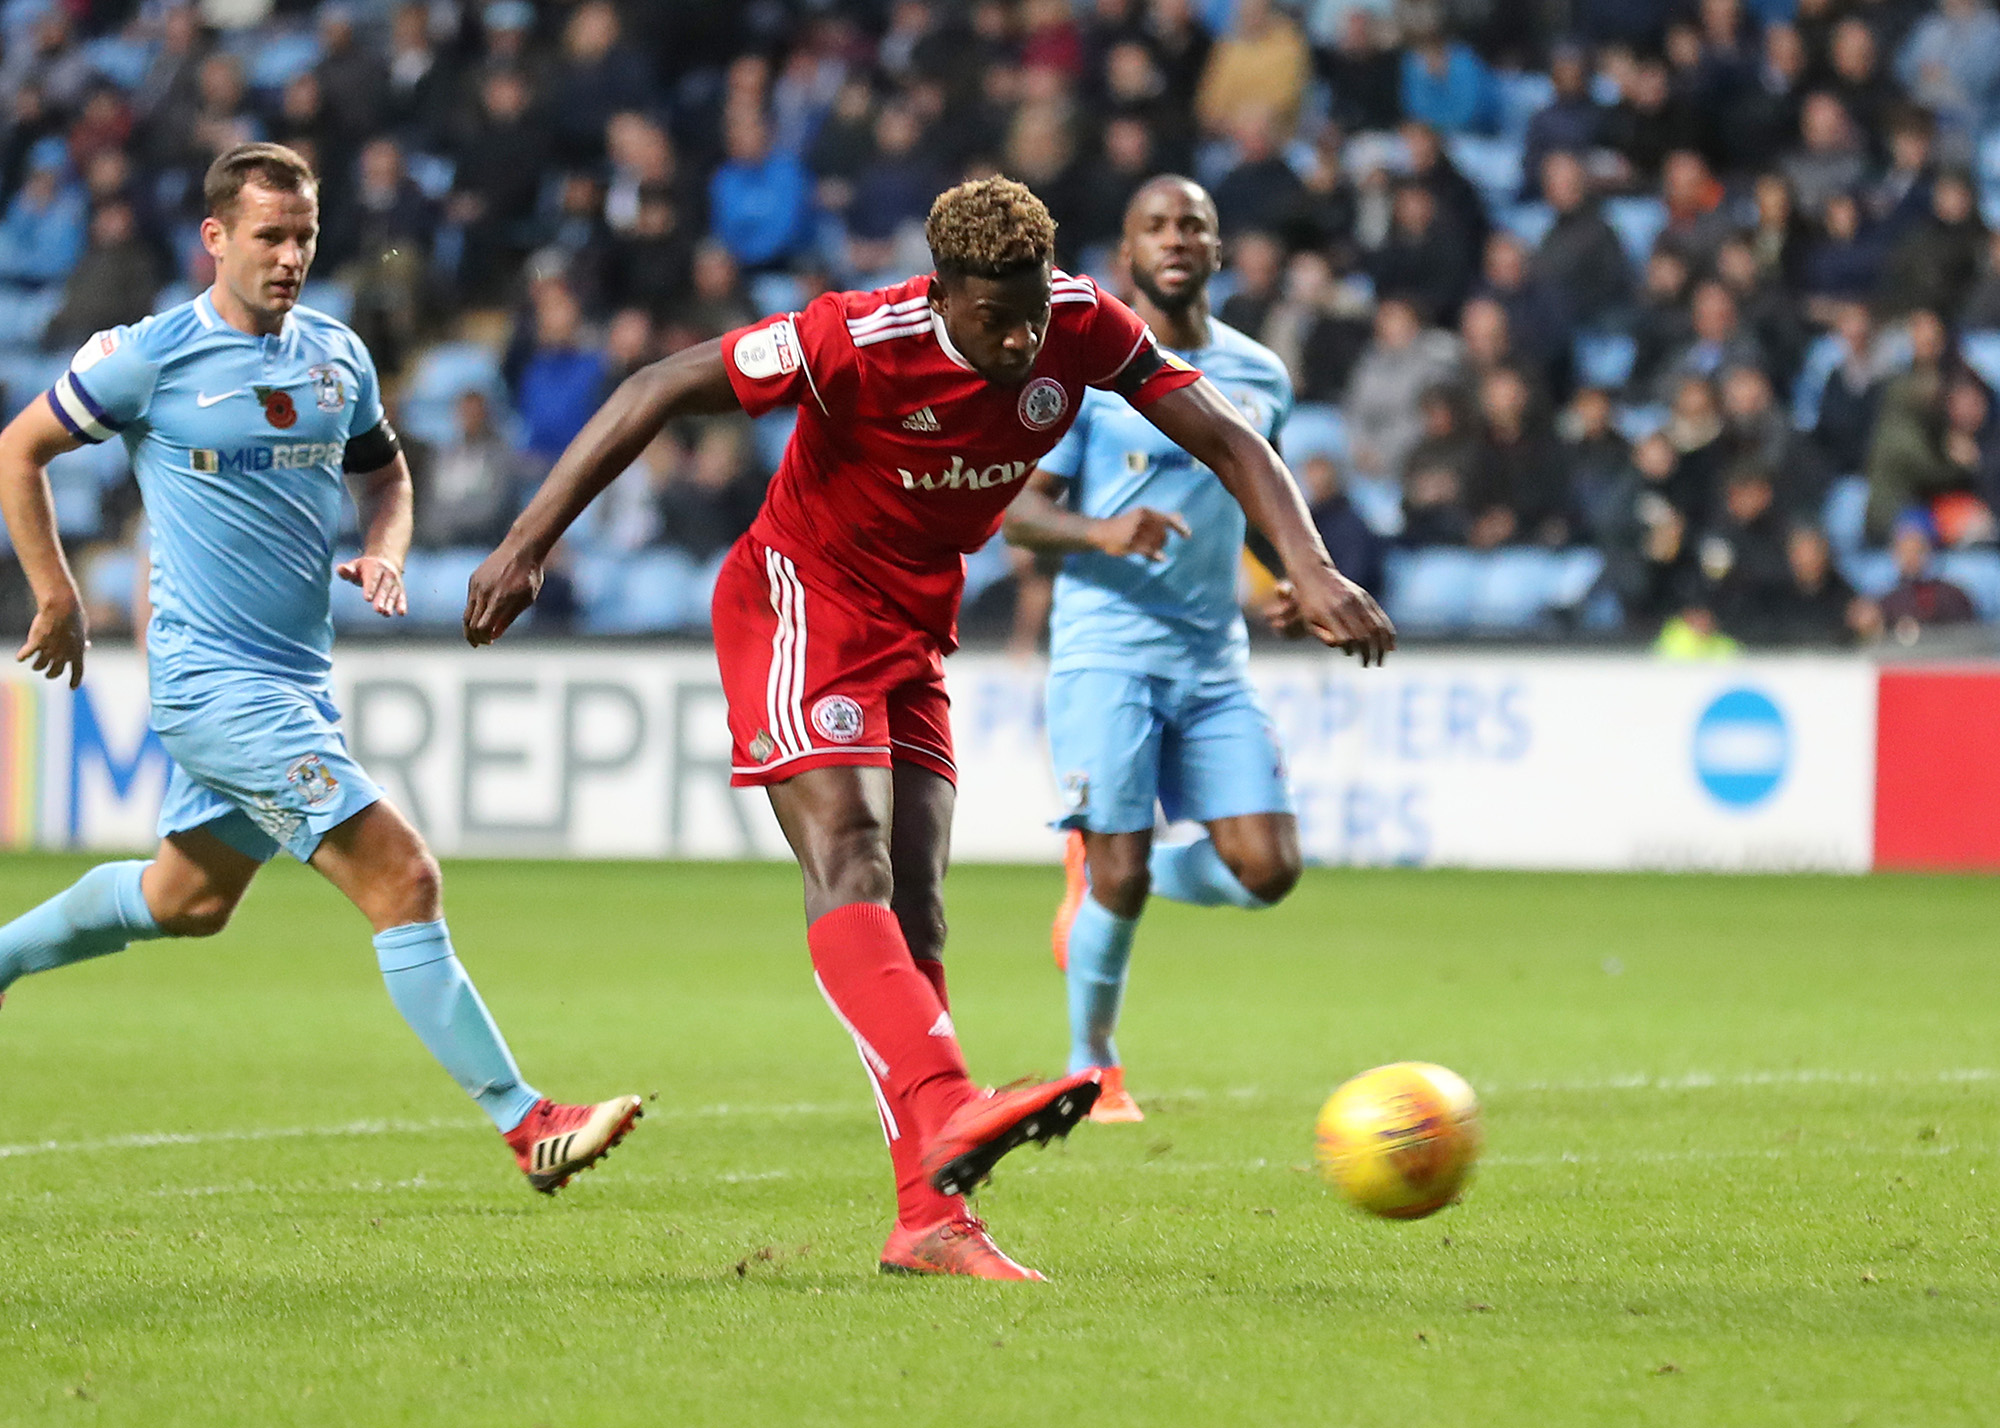 FULL TIME: Coventry City 1 Accrington Stanley 1